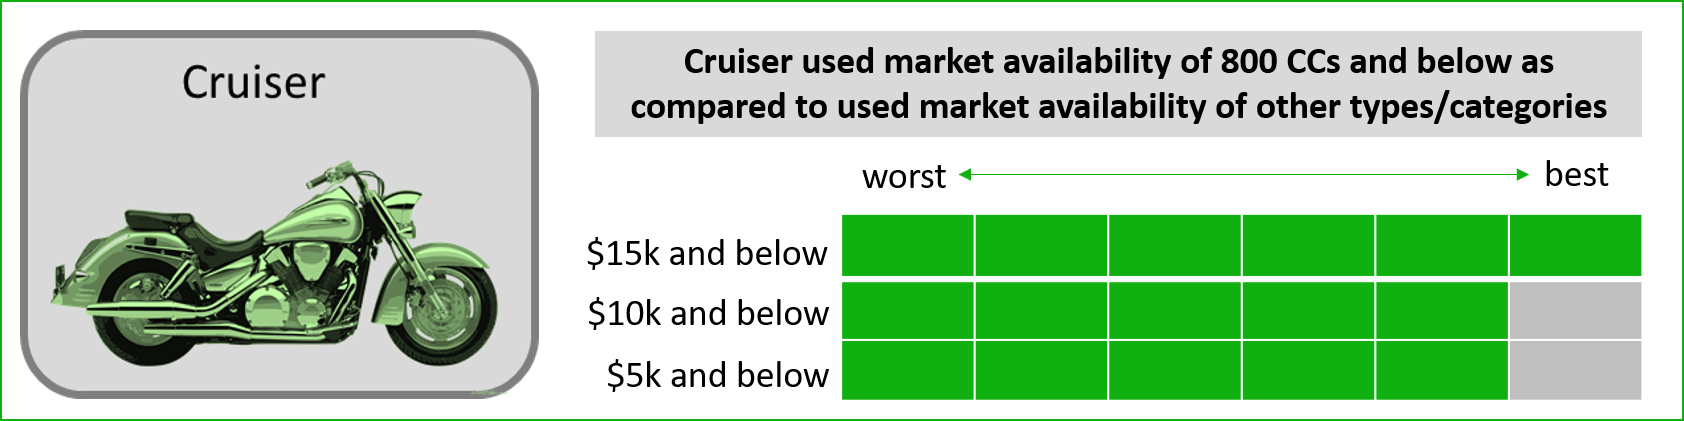 used cruiser type beginner motorcycle market availability infographic